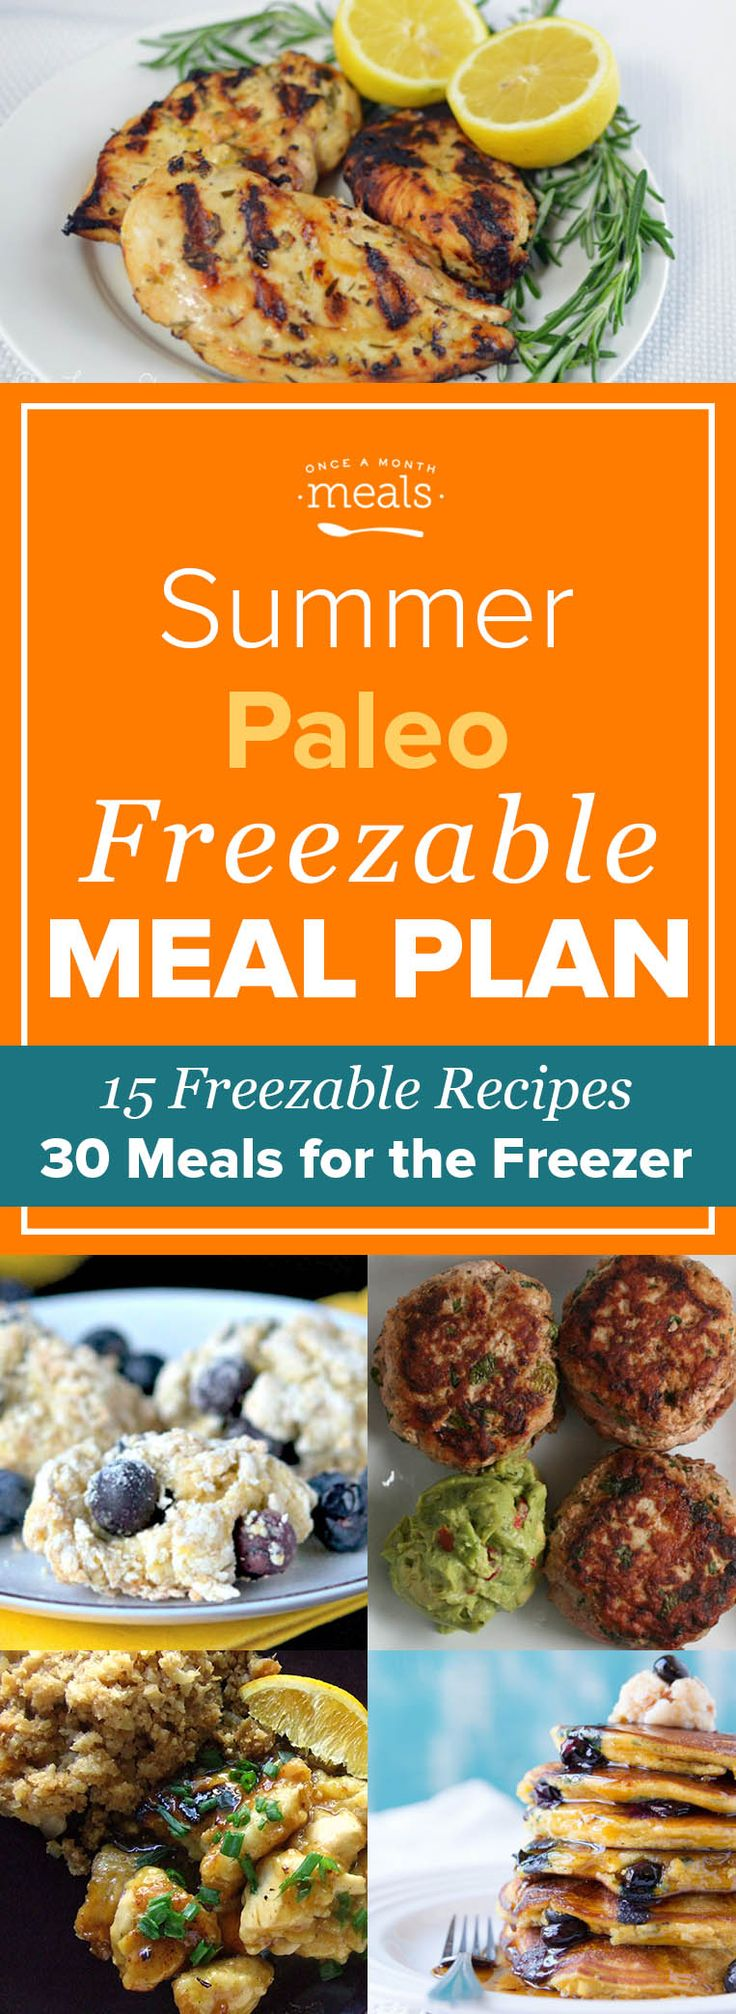 Enjoy more time outdoors with our Summer Paleo Freezer Menu! With easy to reheat breakfasts and lunches you can have homemade meals on even the busiest days.